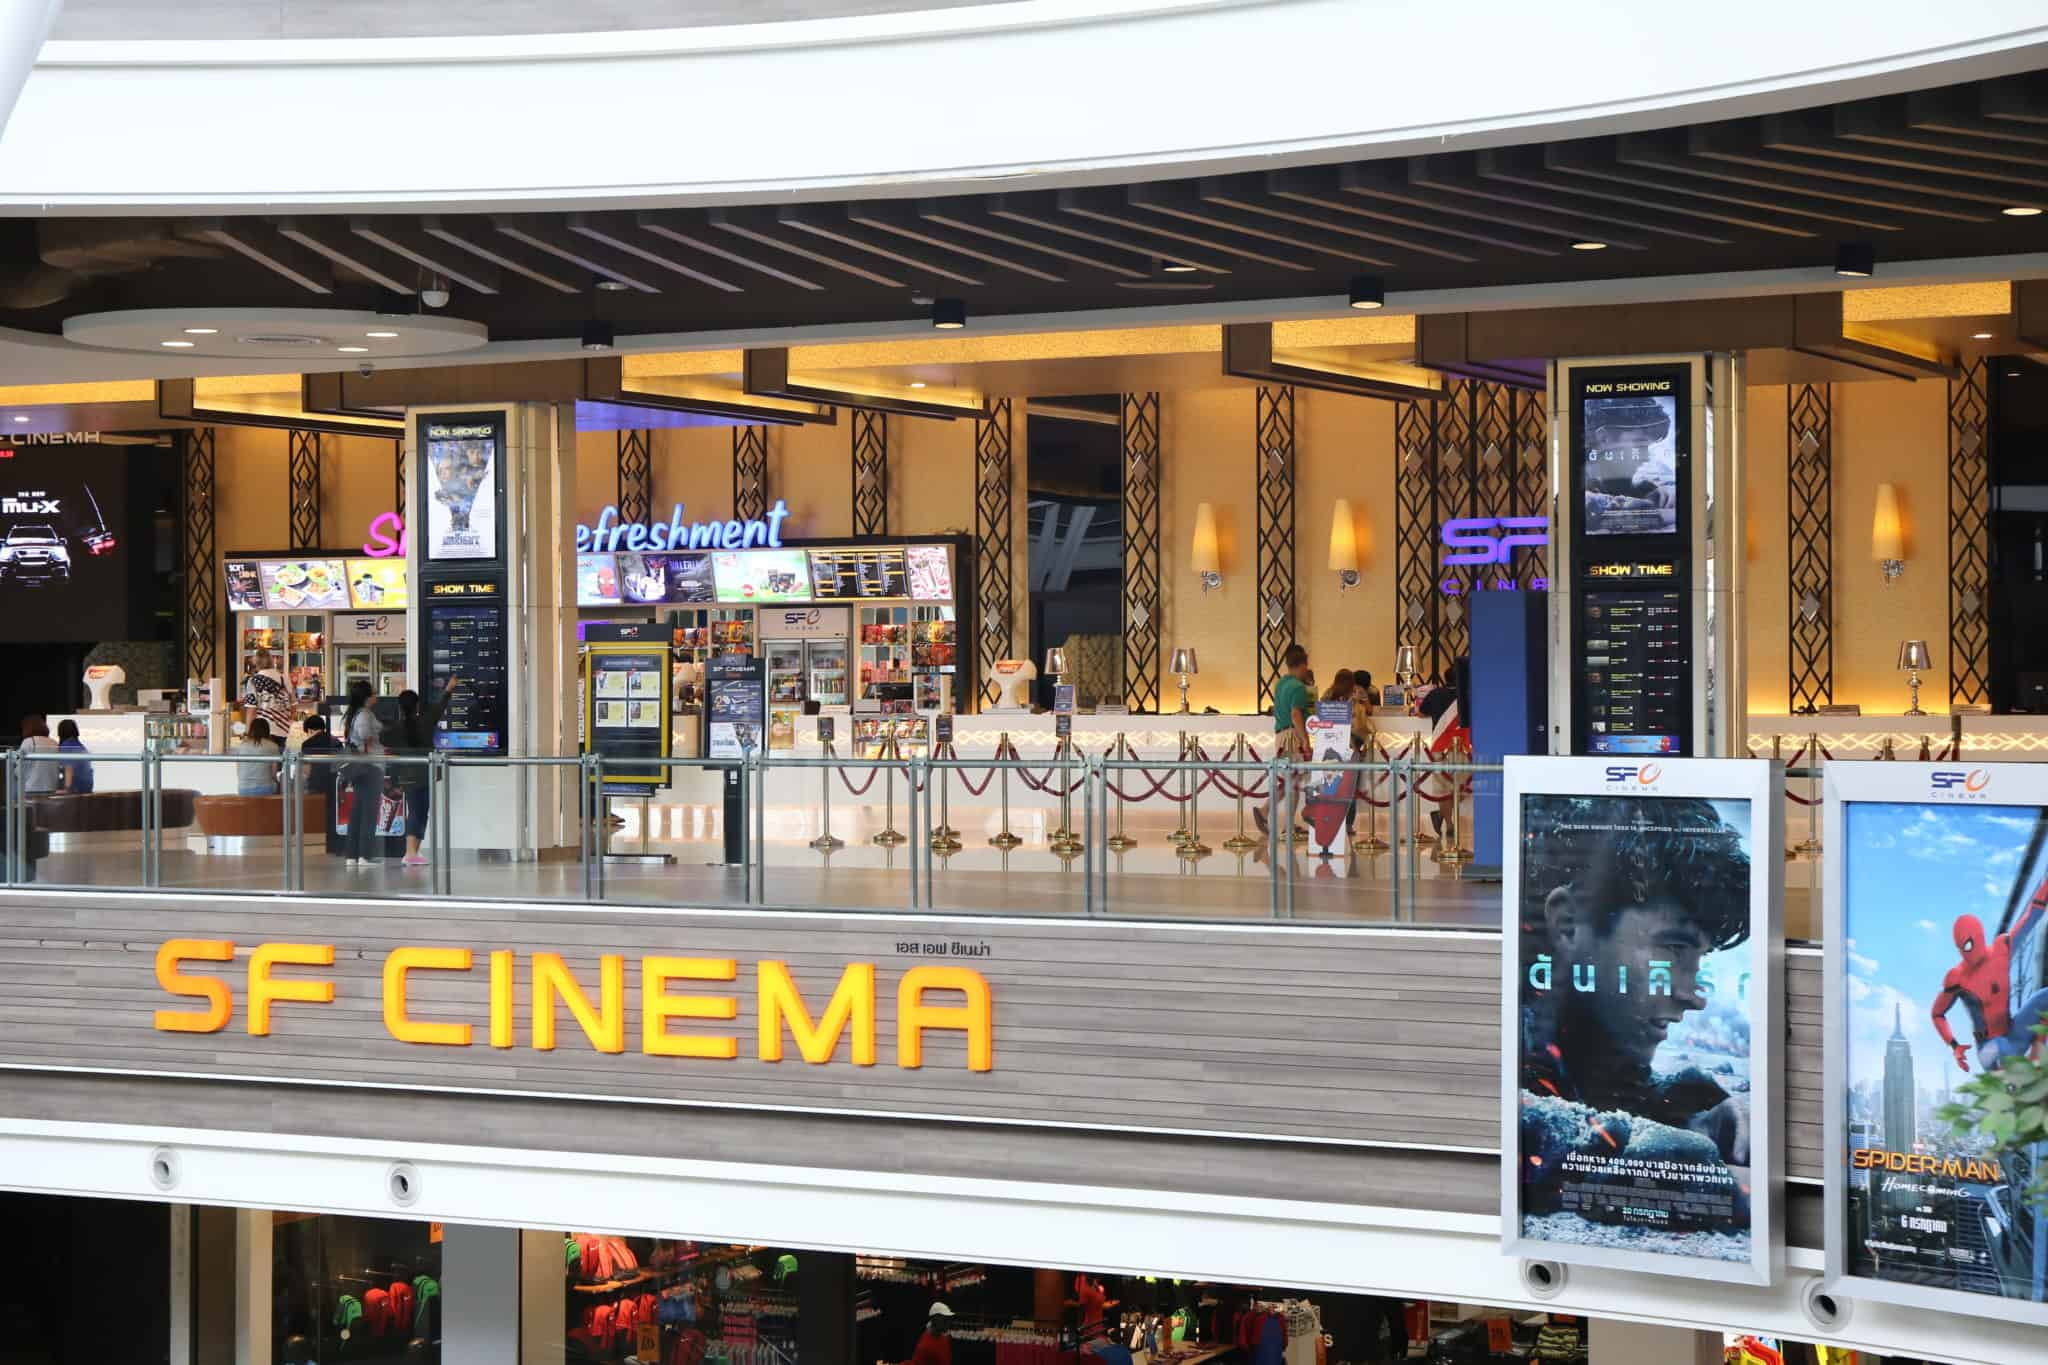 chiang mai movie theater